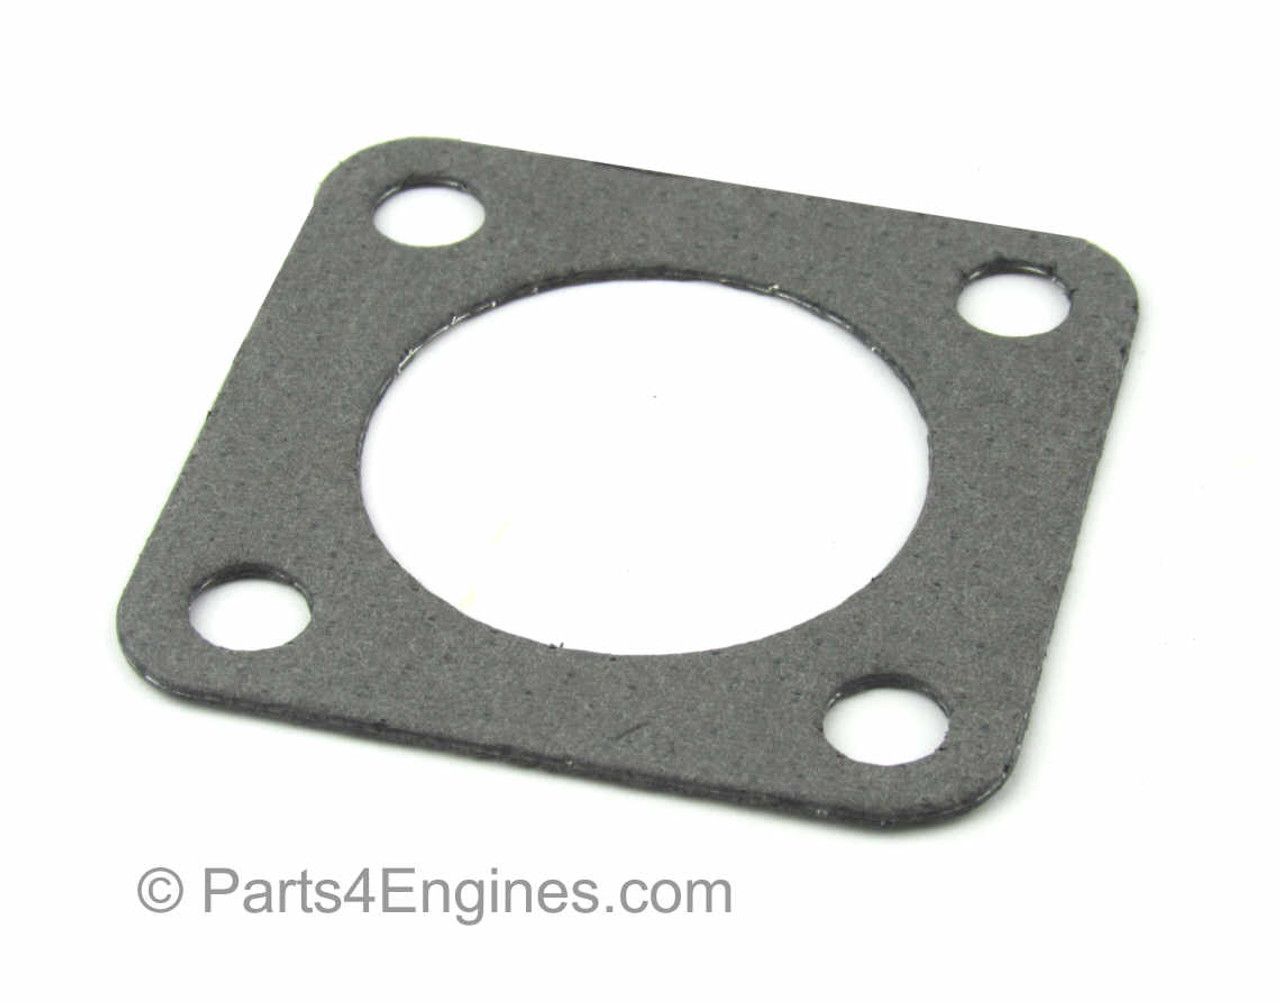 Volvo Penta MD2020 exhaust outlet gasket from parts4engines.com